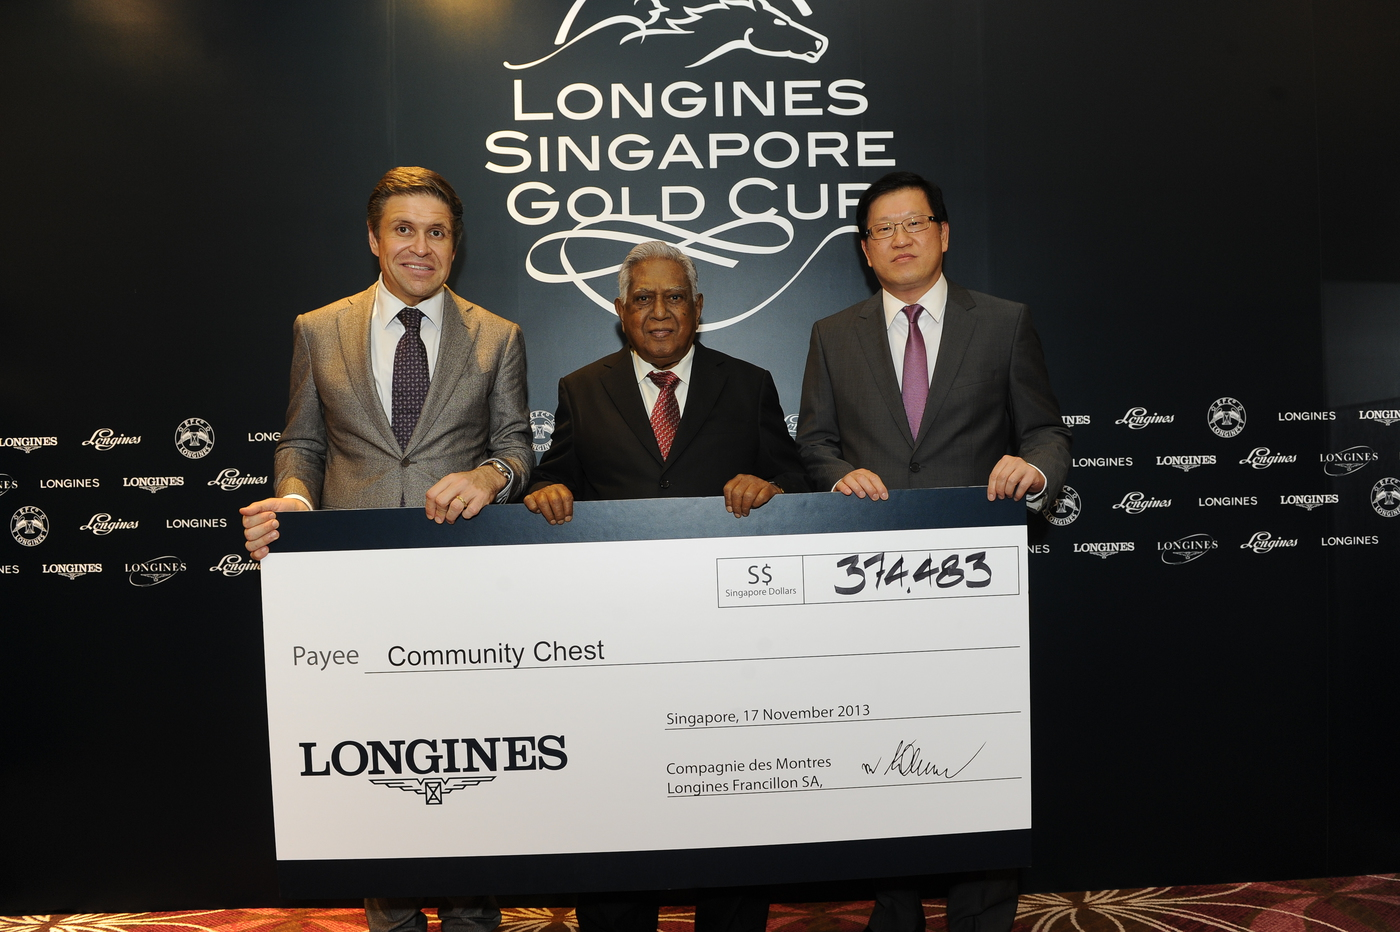 Longines Flat Racing Event: The prestigious Longines Singapore Gold Cup 2013 raises S$374,483 for charity 4